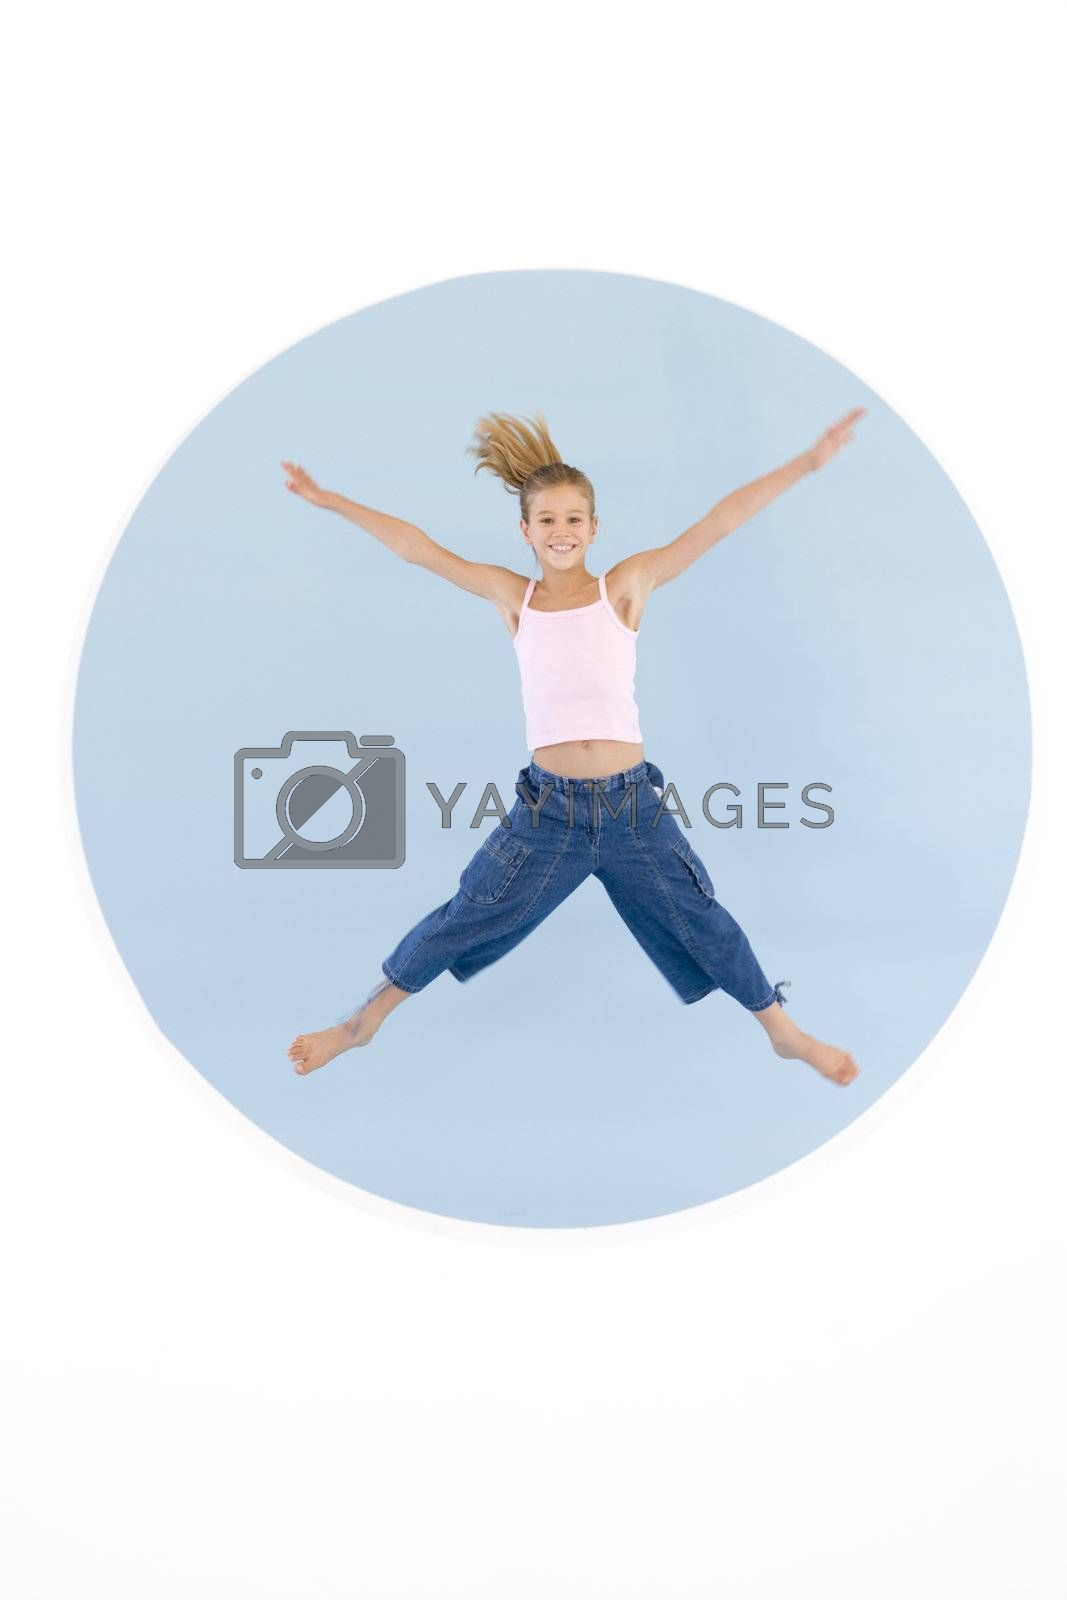 Young girl jumping with arms out smiling